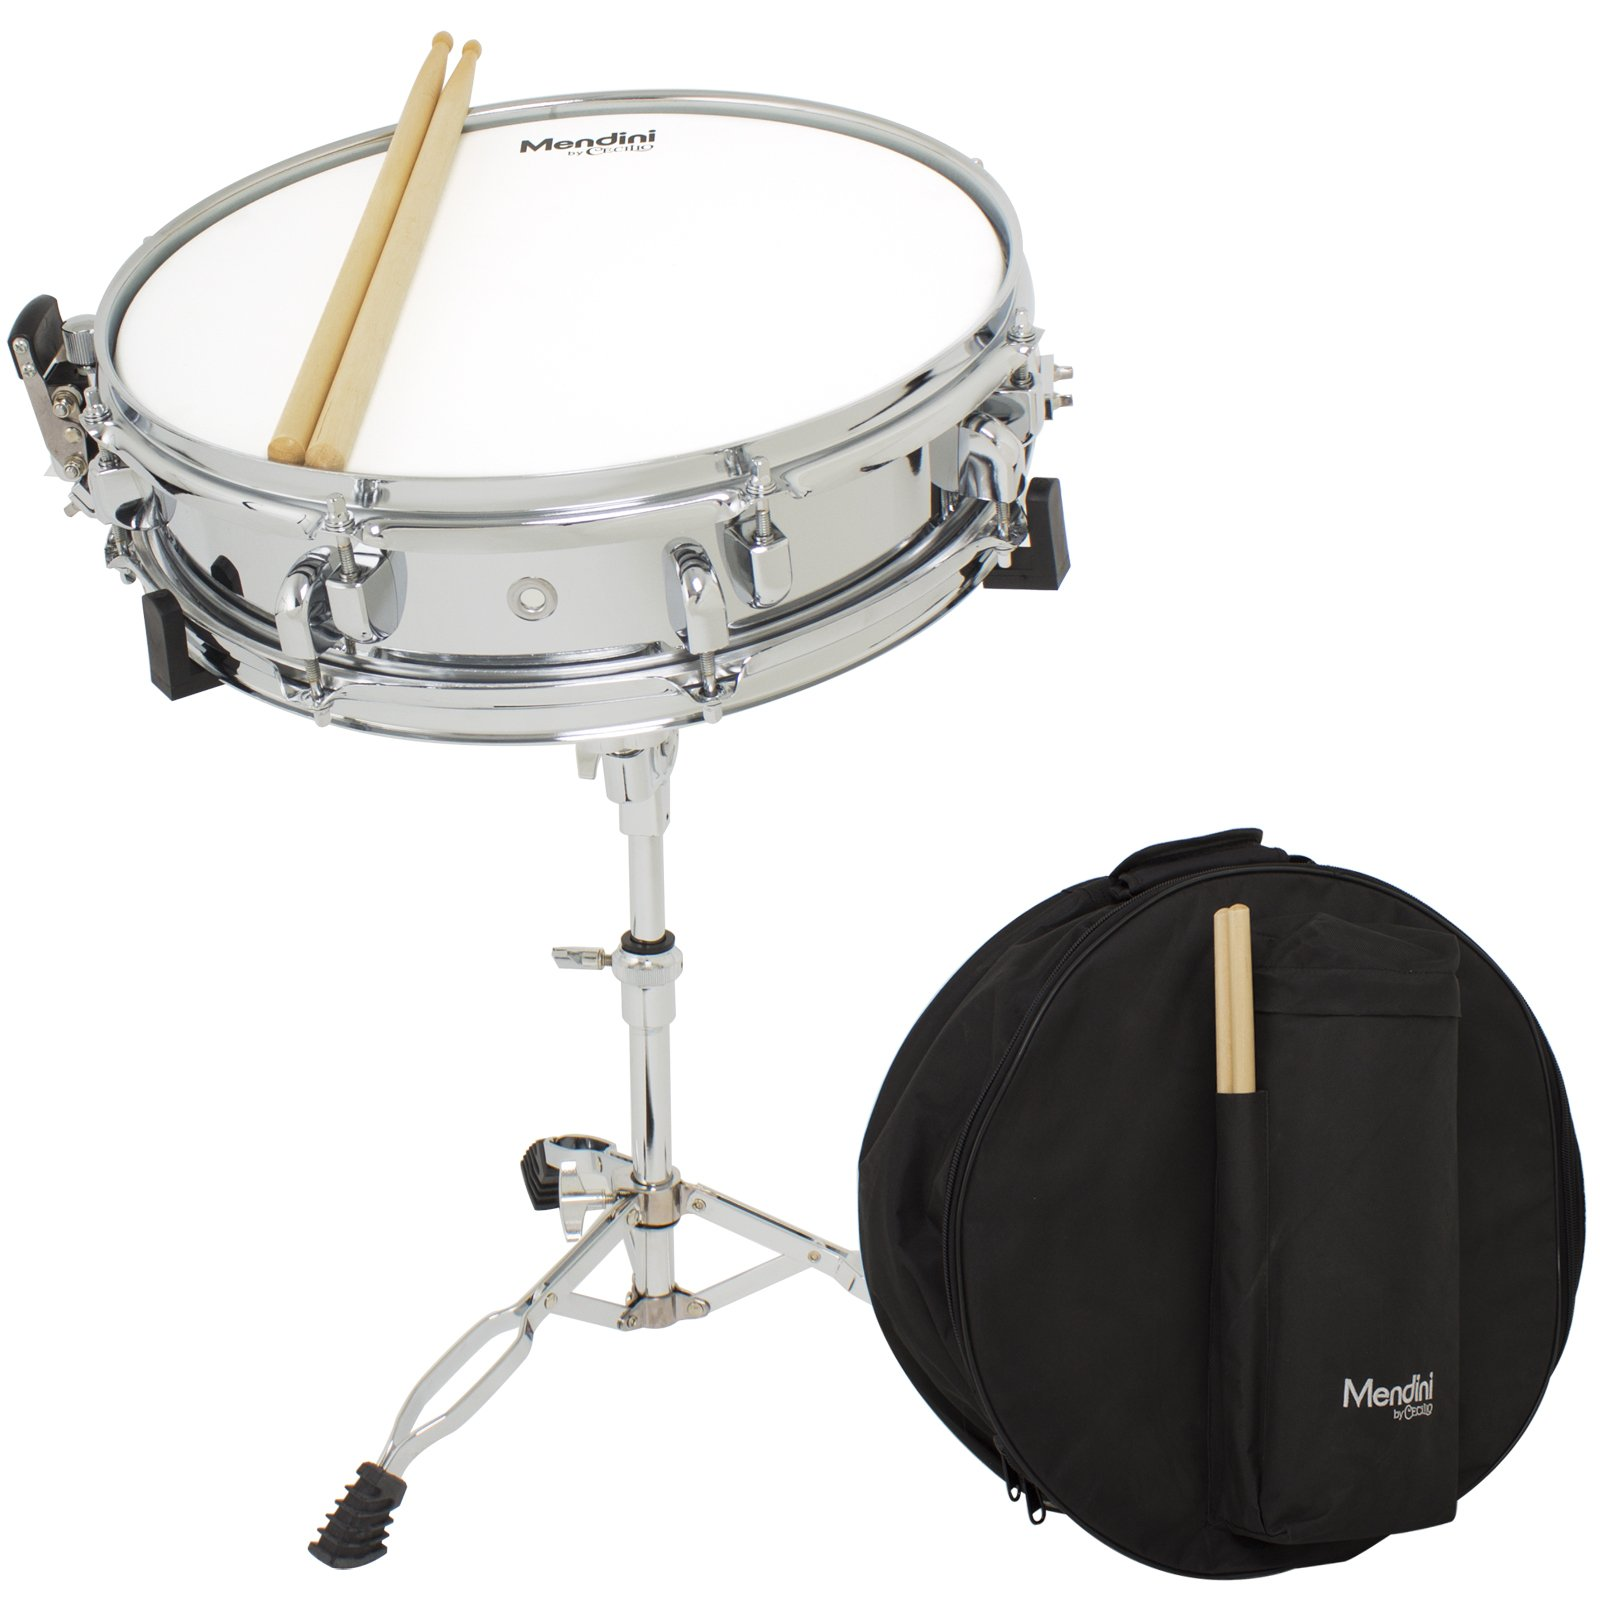 Mendini by Cecilio Student 14-inch Snare Drum Set with Soft Case, Drum Sticks, and Stand